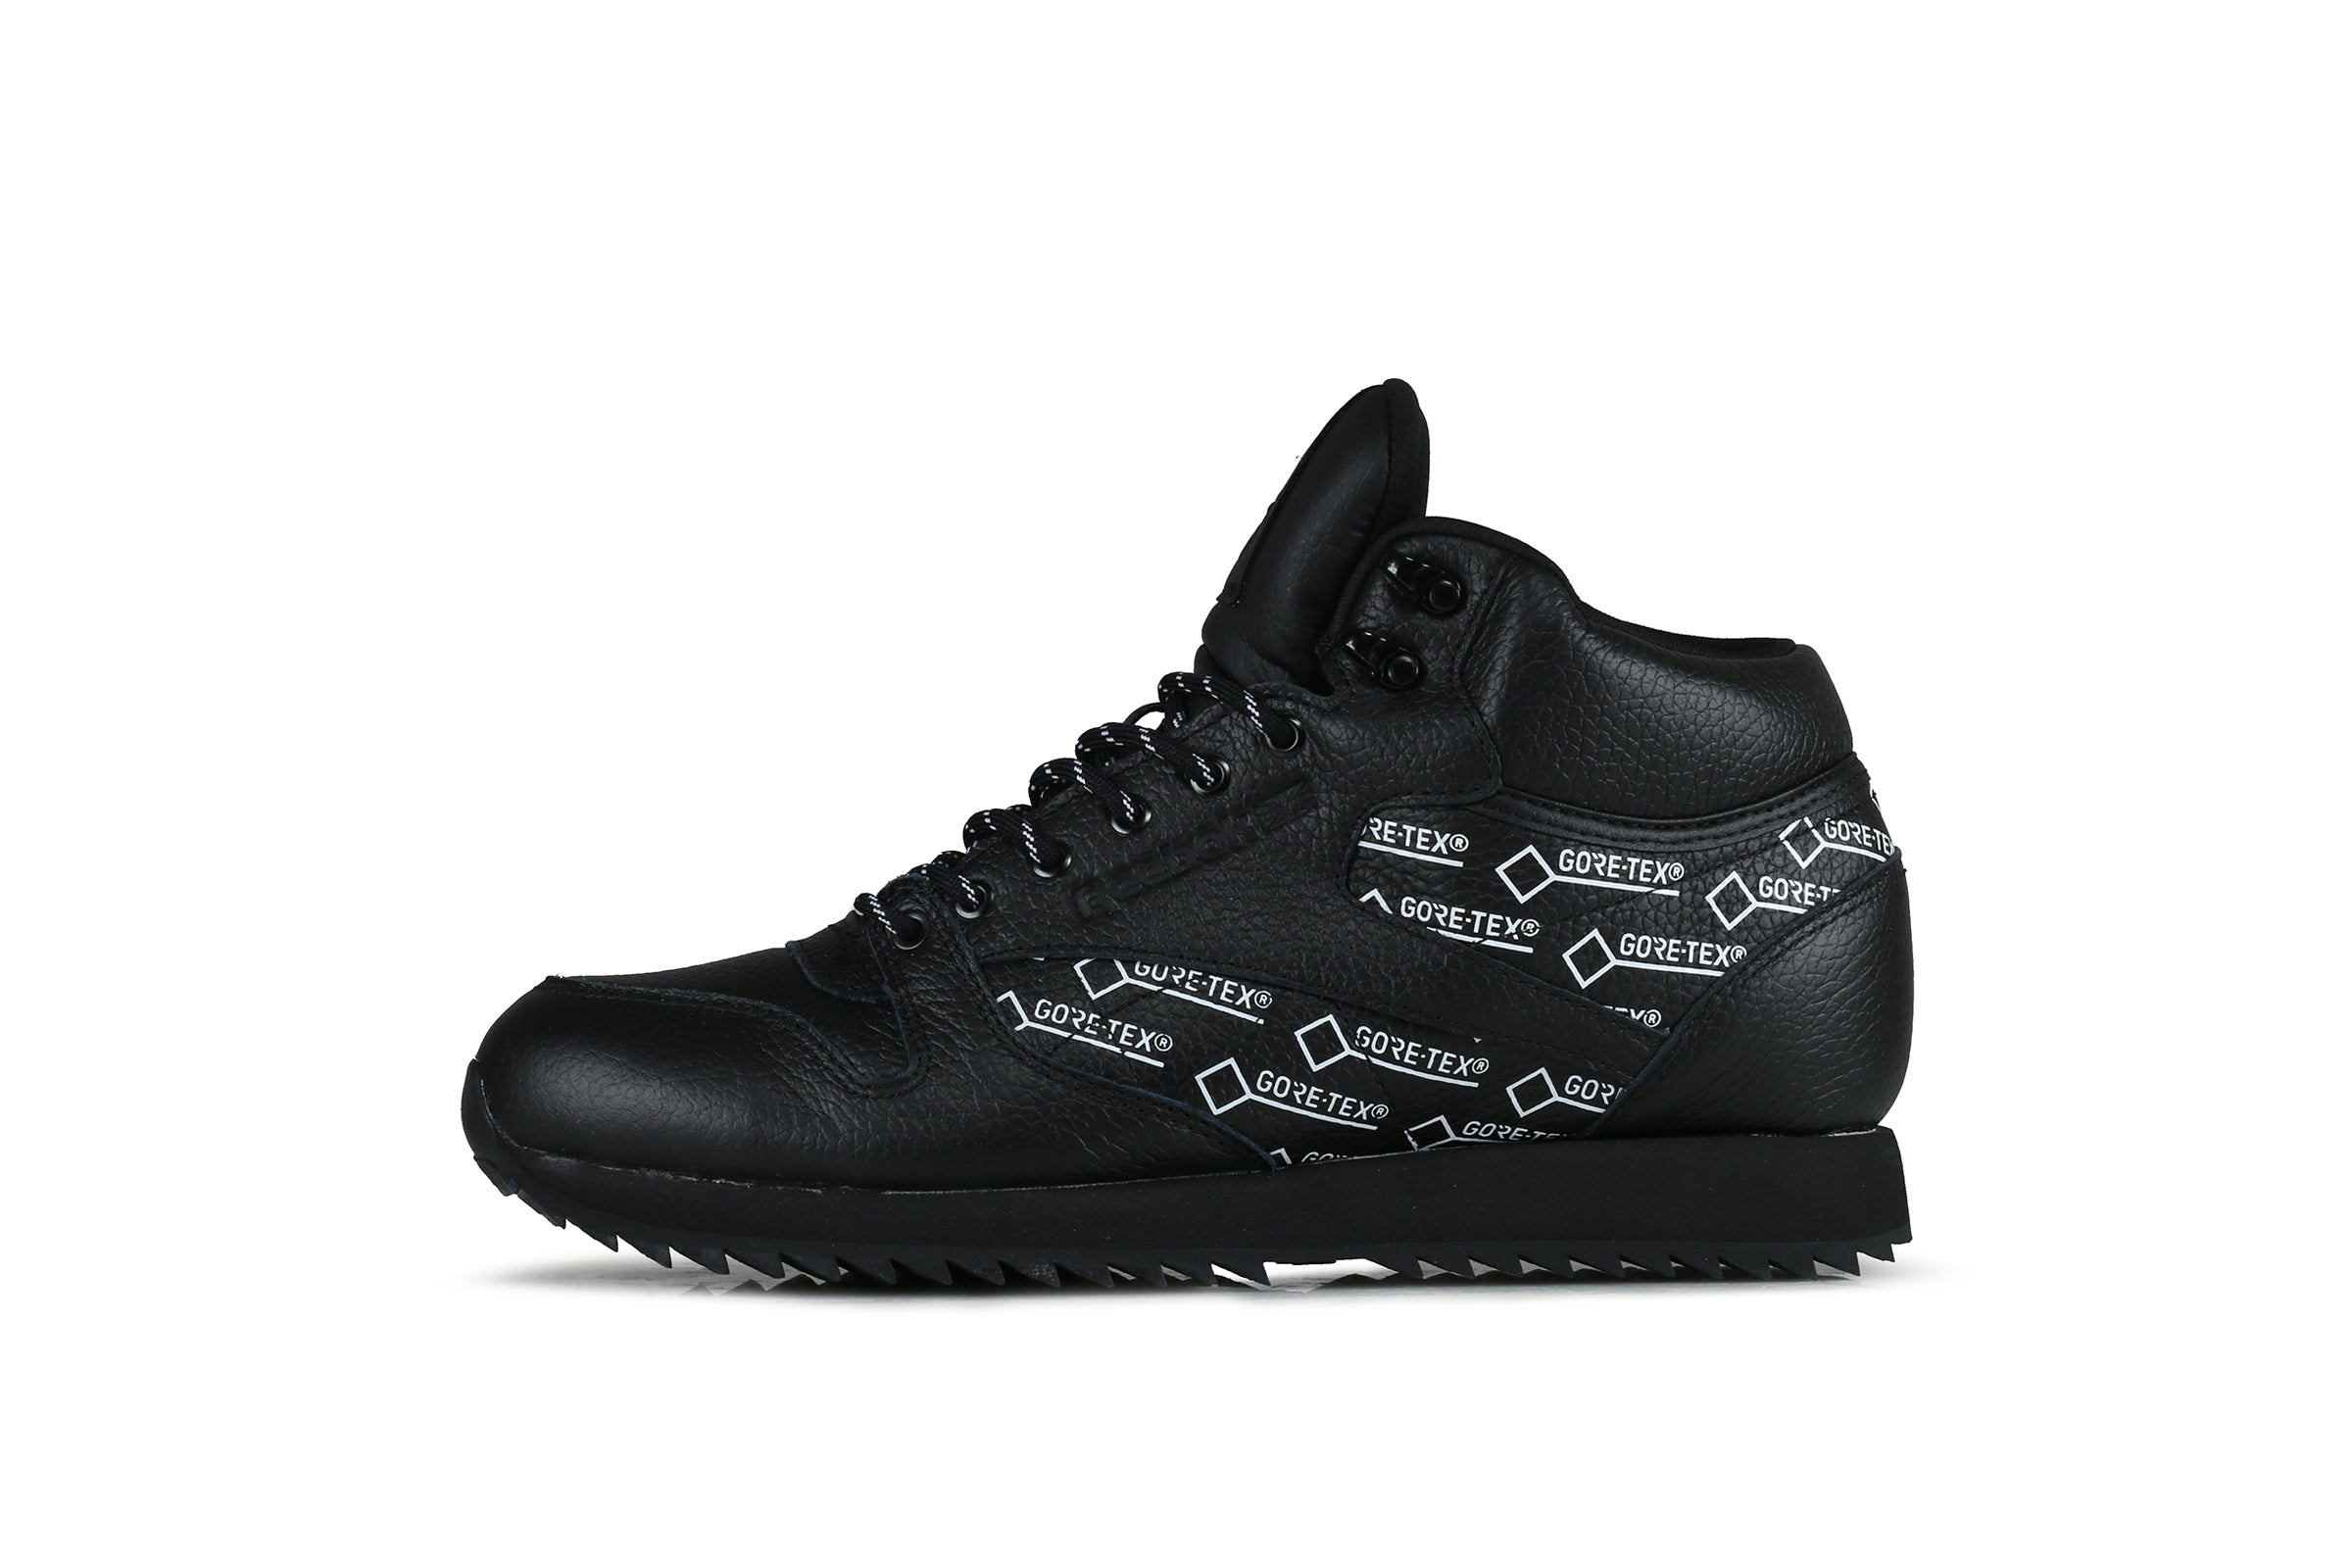 Reebok Classic Leather Mid Ripple Goretex d1bb6e2b8c